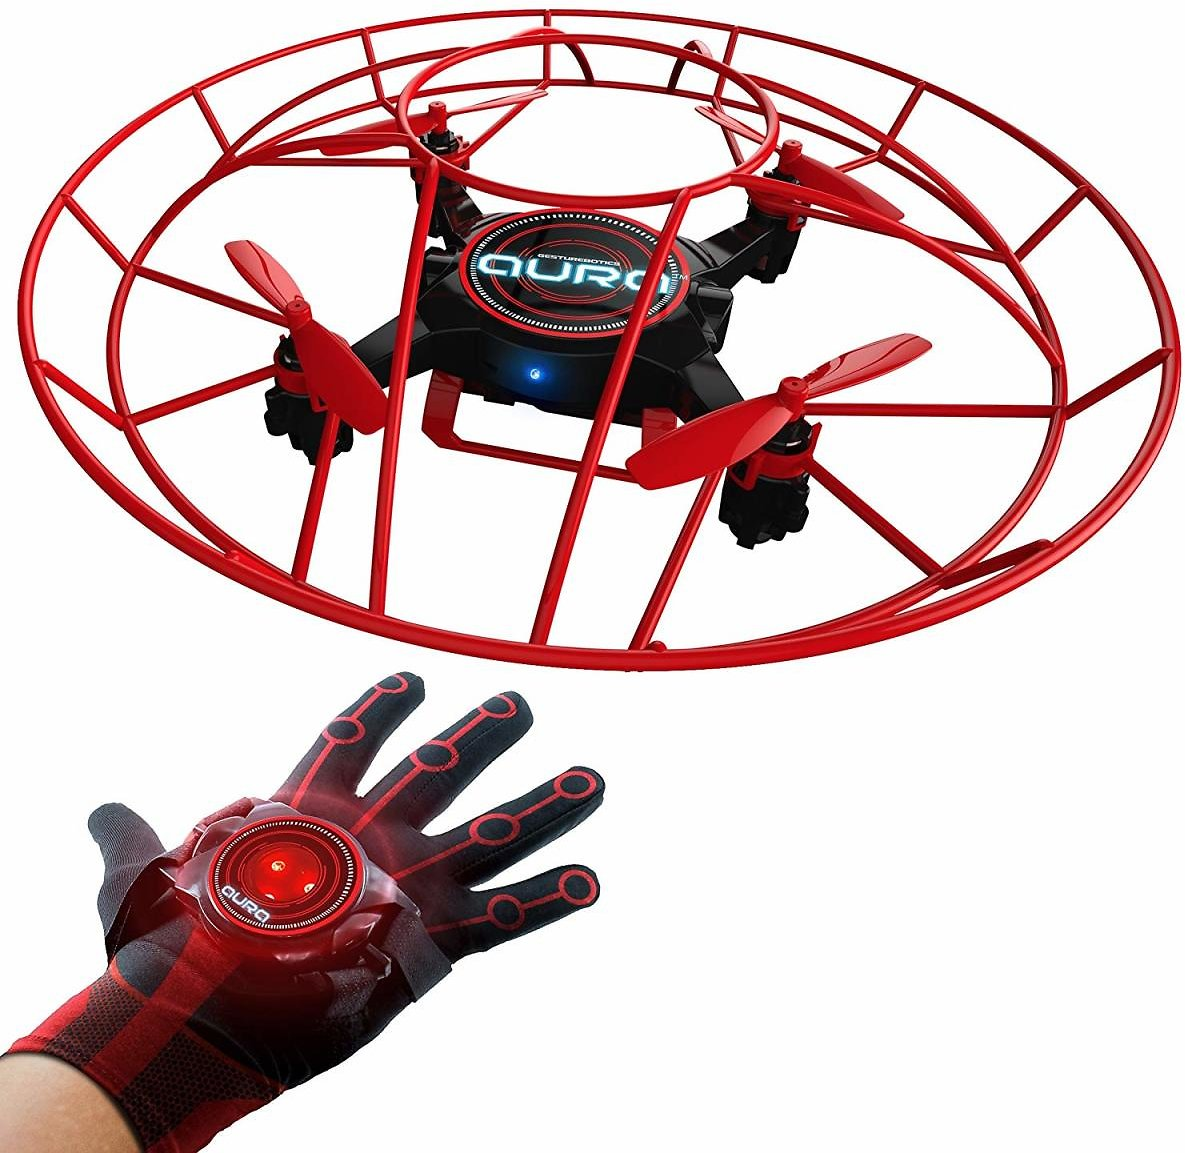 Price Drop!! KD Interactive Aura Drone with Glove Controller